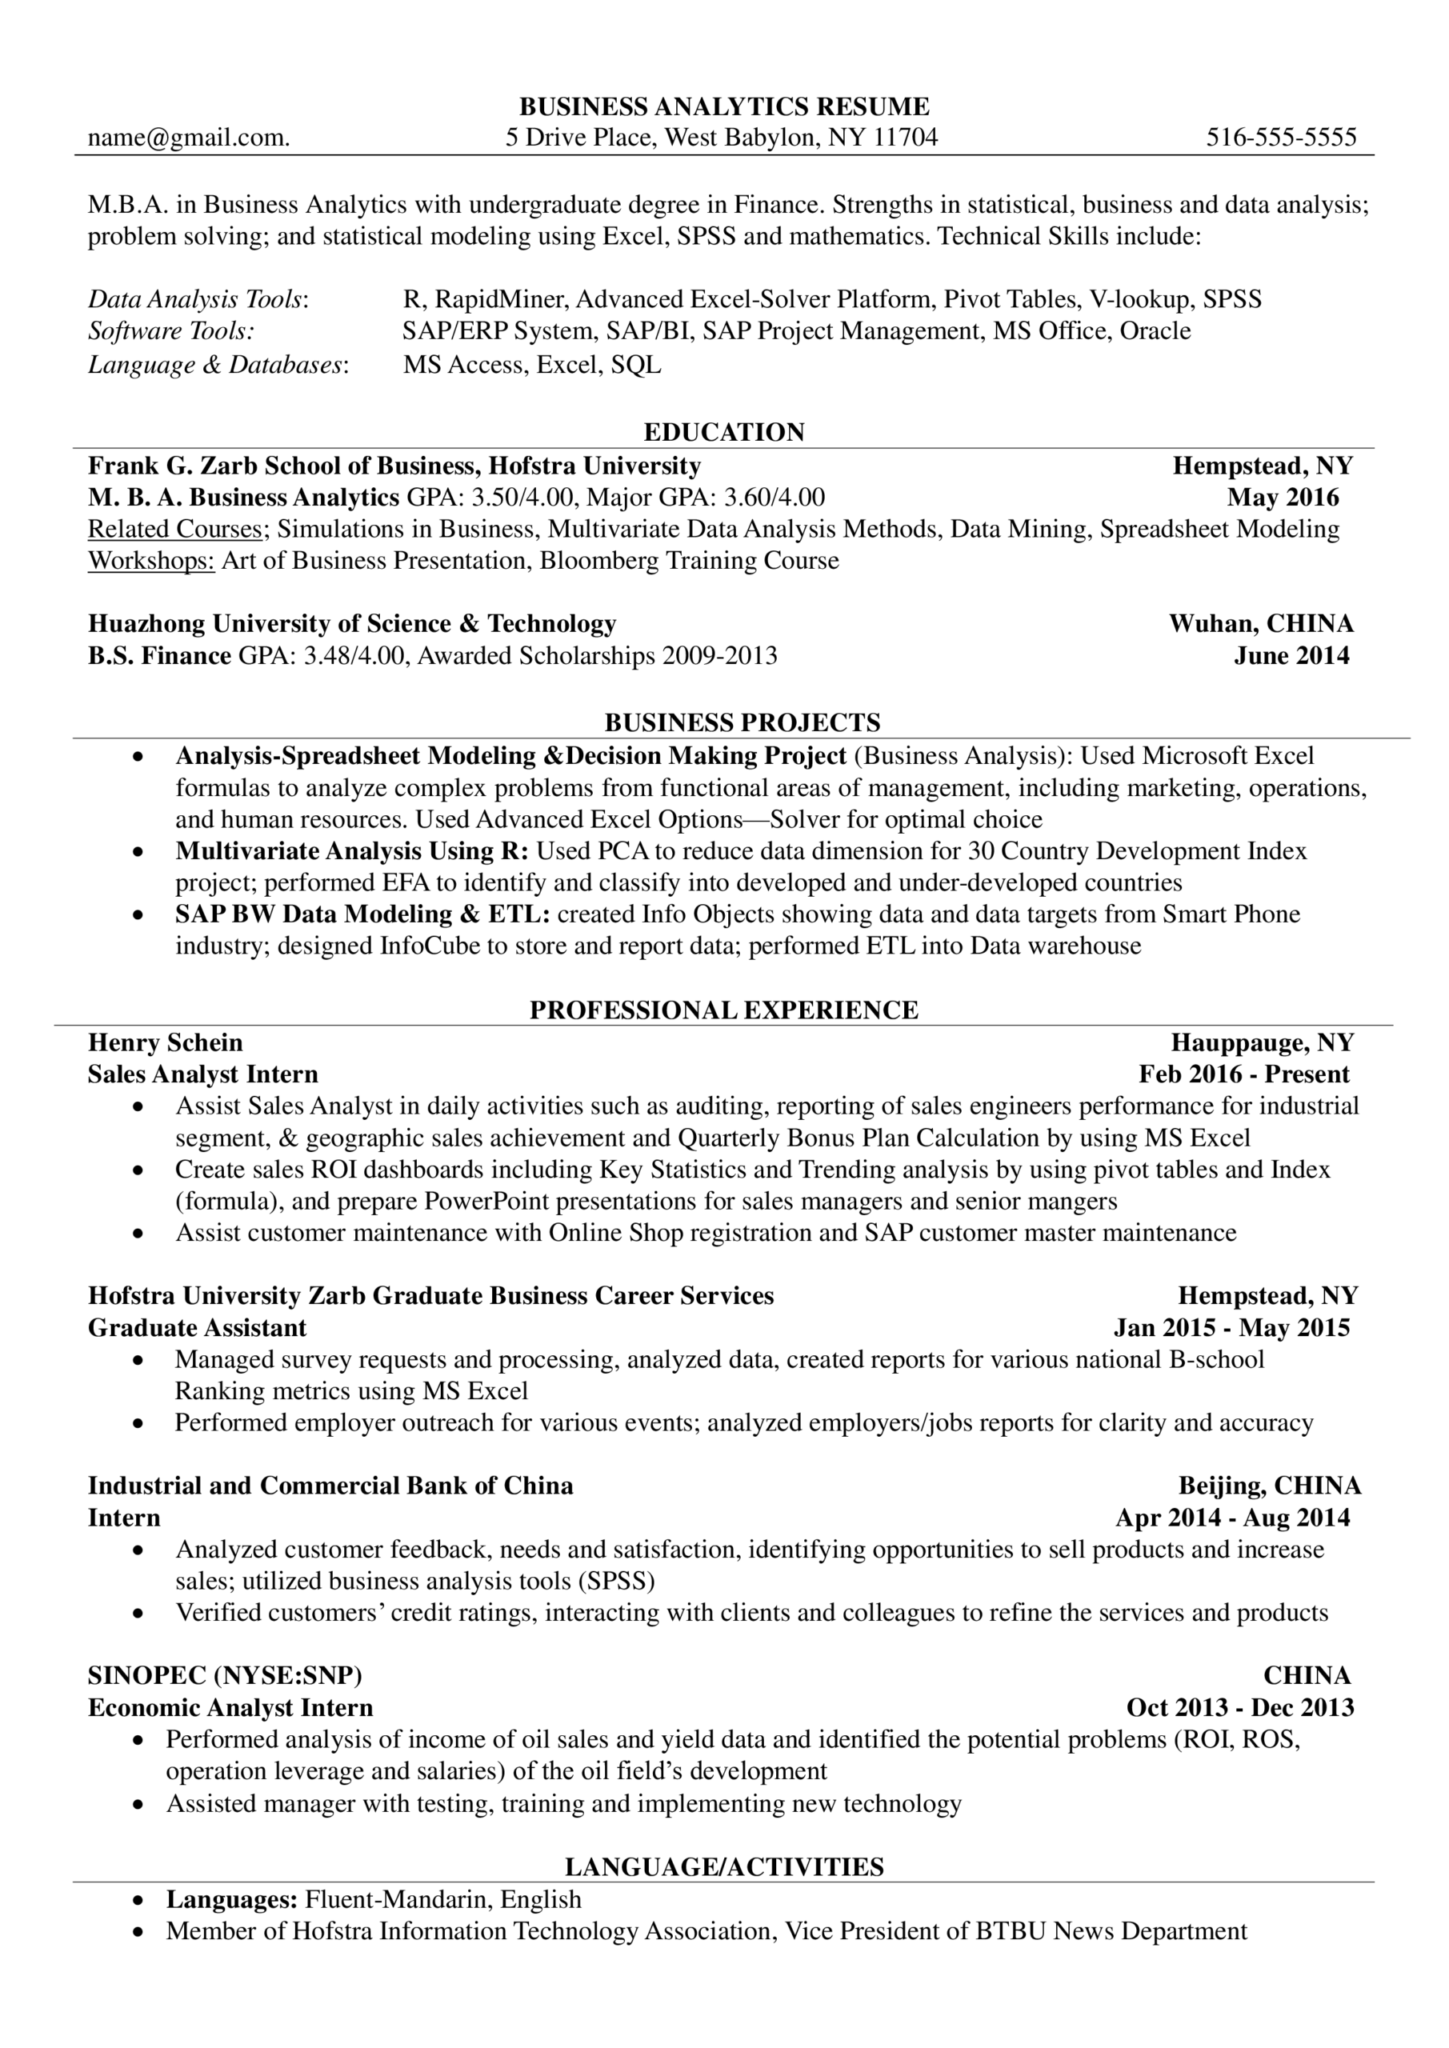 Cool Cool Credit Analyst Resume Example From Professional